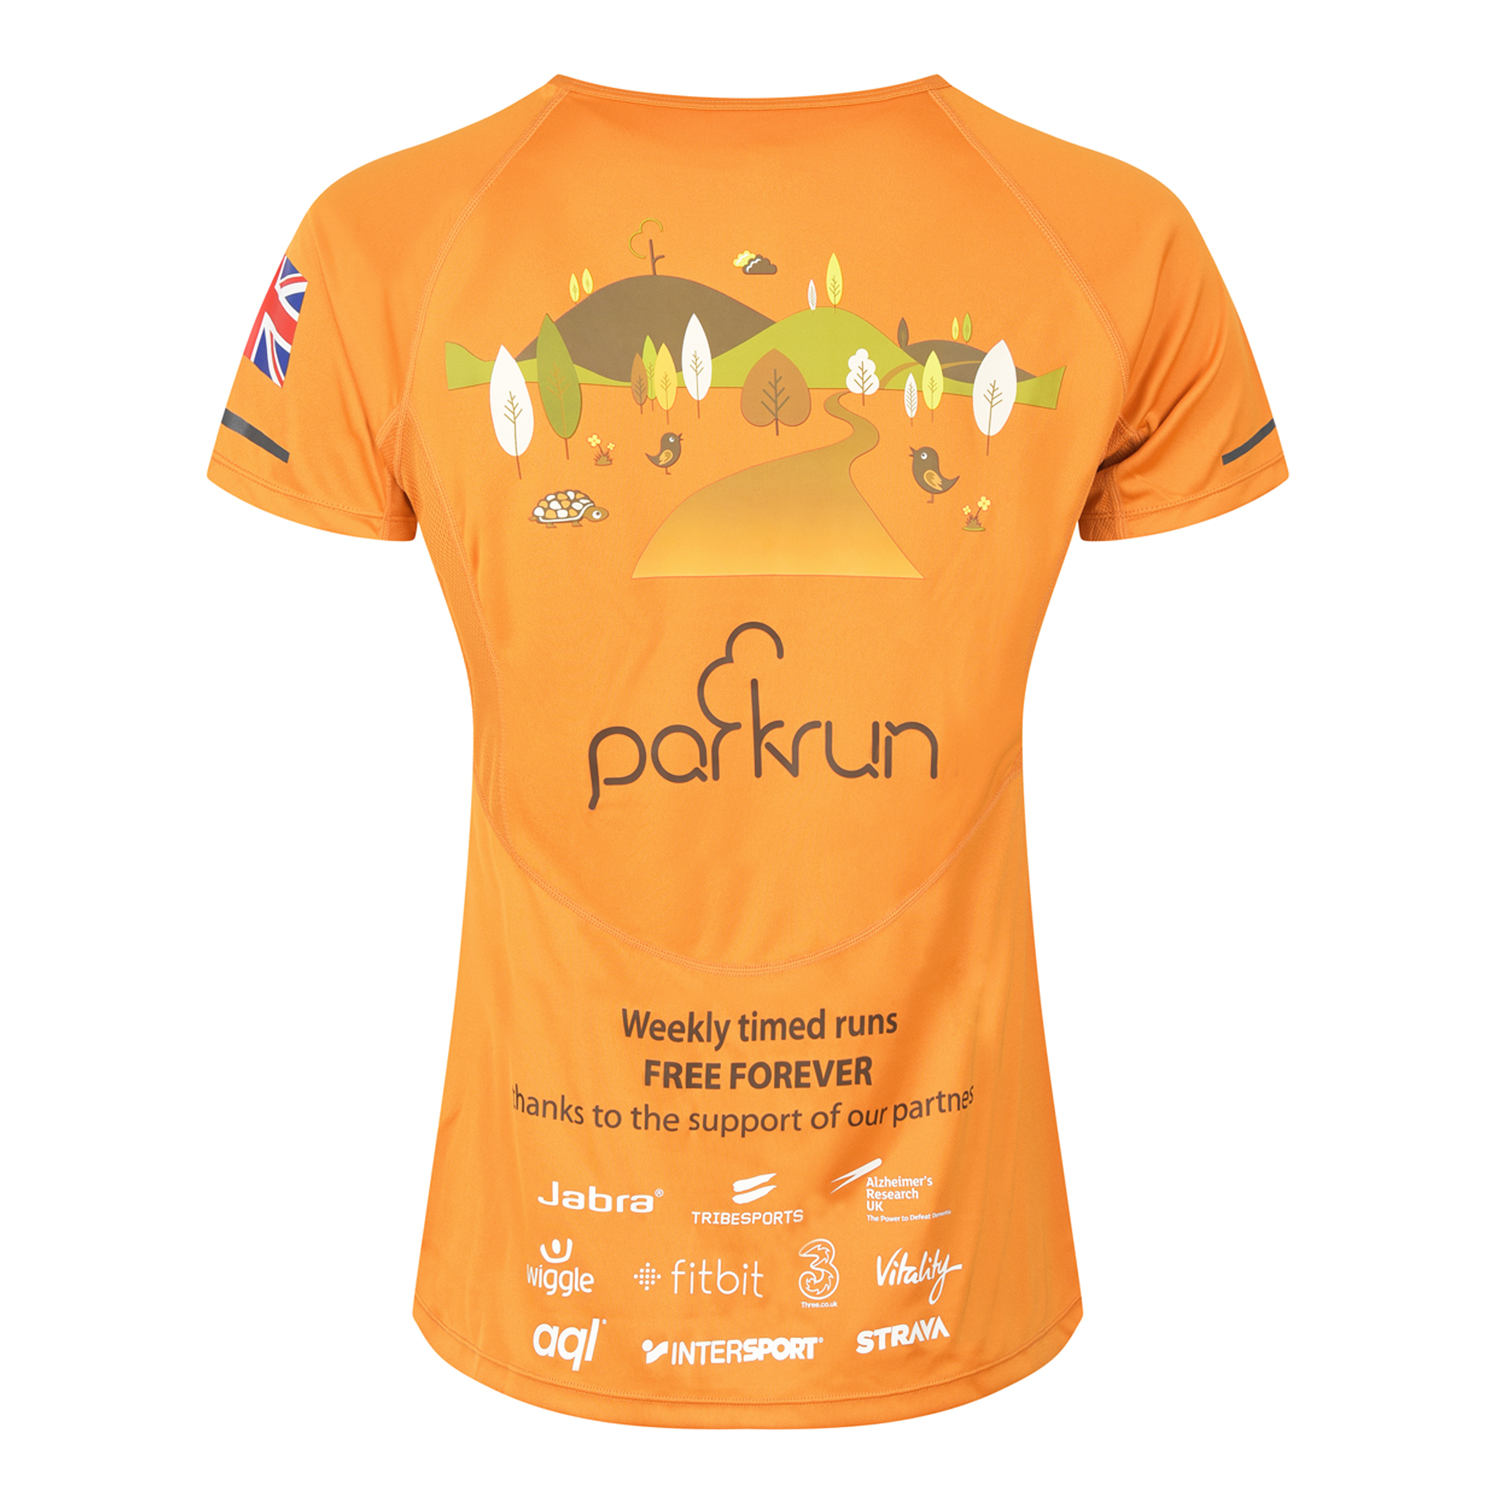 parkrun women's performance short sleeve t-shirt UK , parkrun - 3